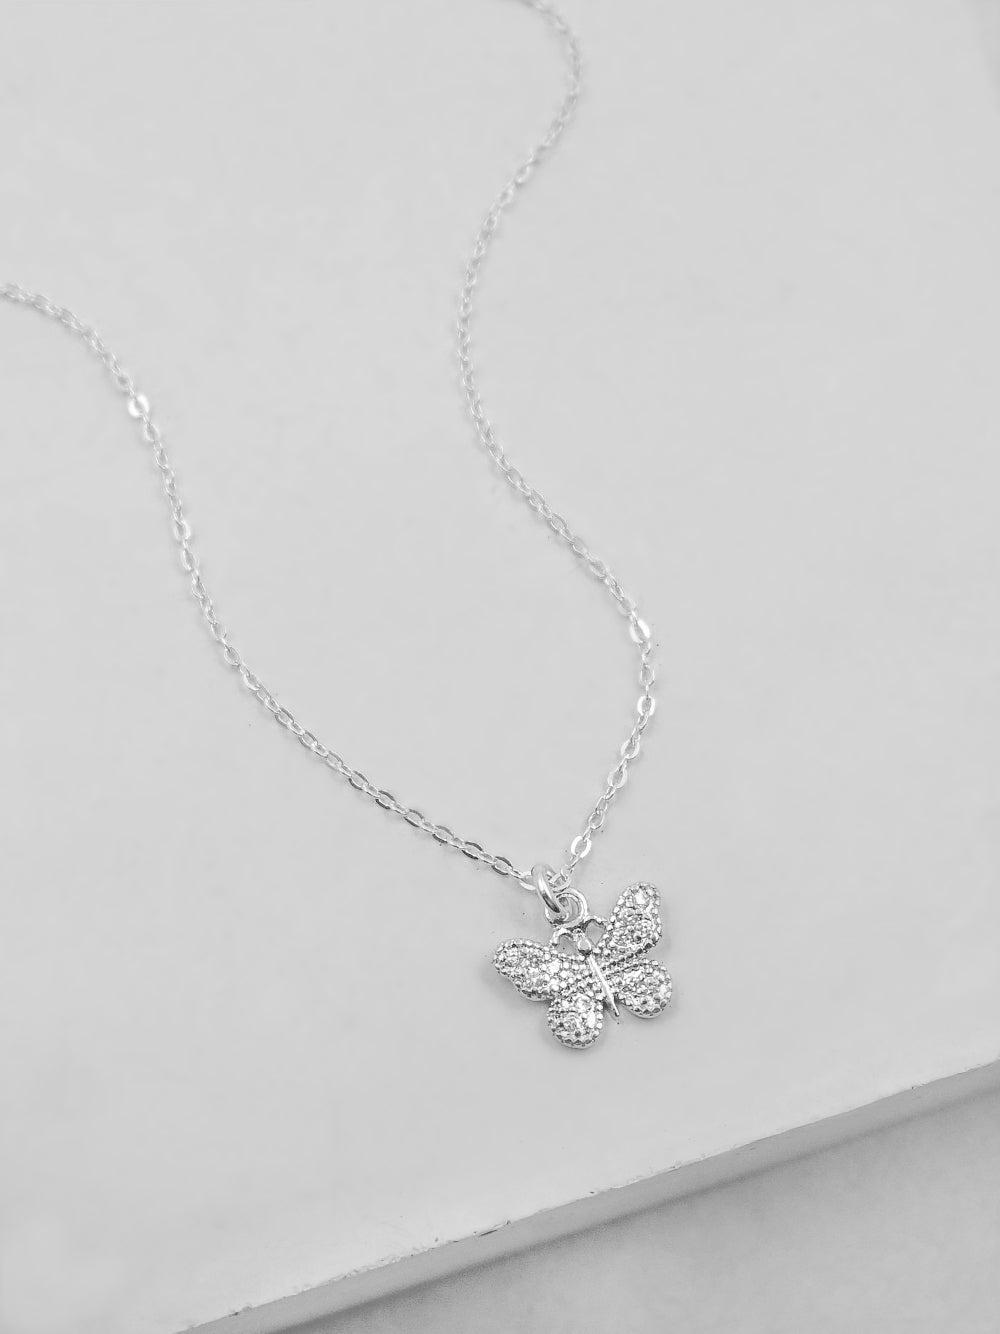 Rhodium Plated Small Butterfly CZ Charm Silver   Necklace by The Faint Hearted Jewelry